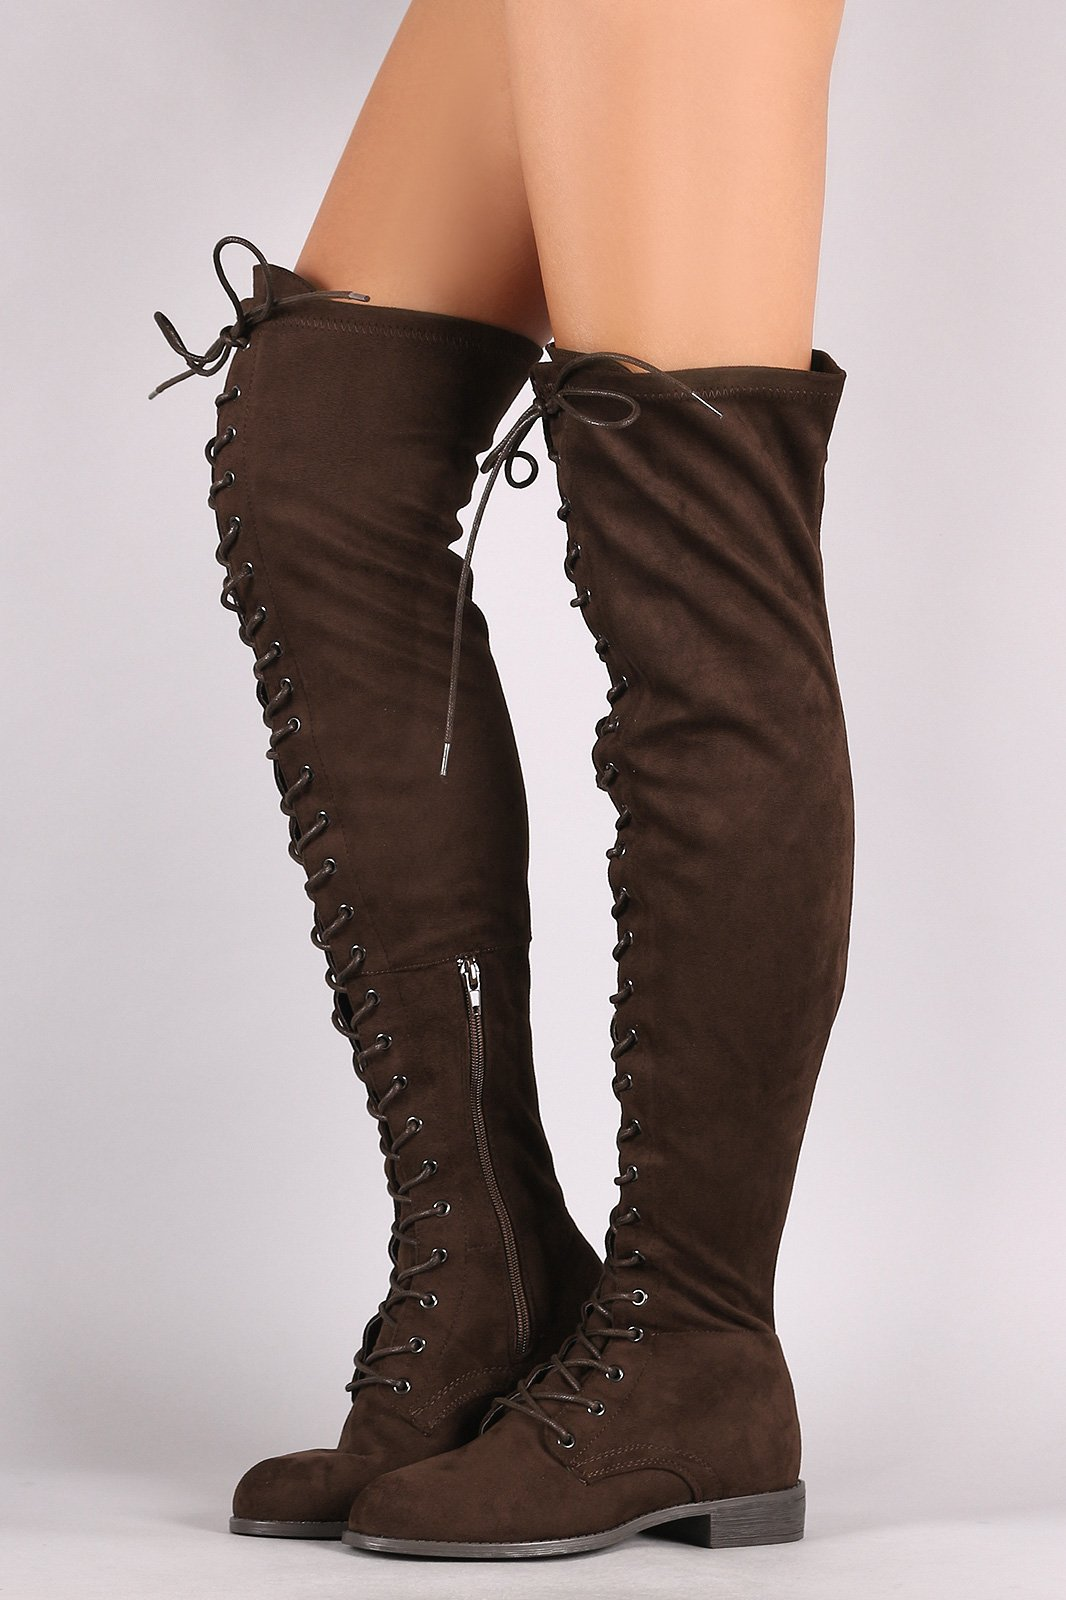 4e9ffc275d8a Wild Diva Lounge Suede Lace Up Over-The-Knee Combat Boots on Storenvy